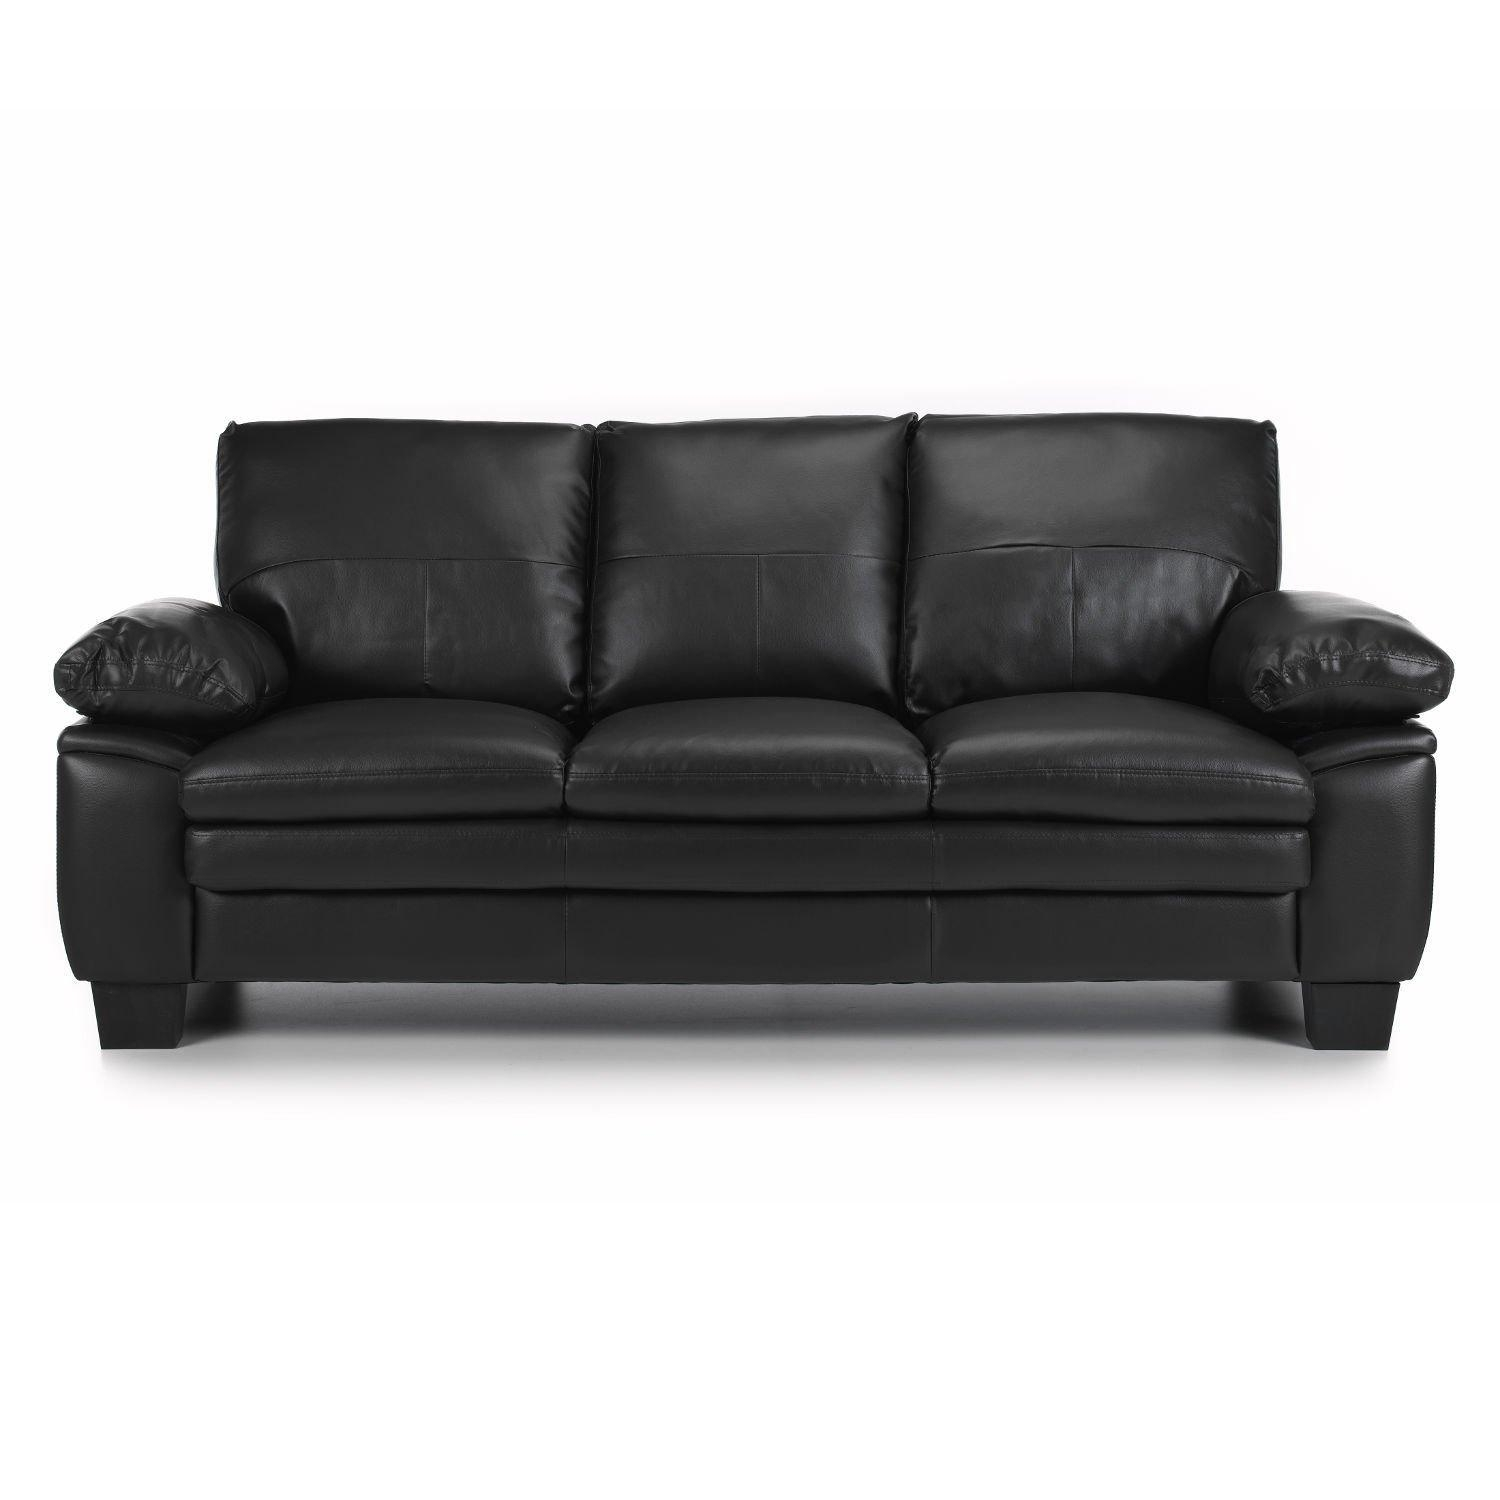 Featured Image of 3 Seater Leather Sofas